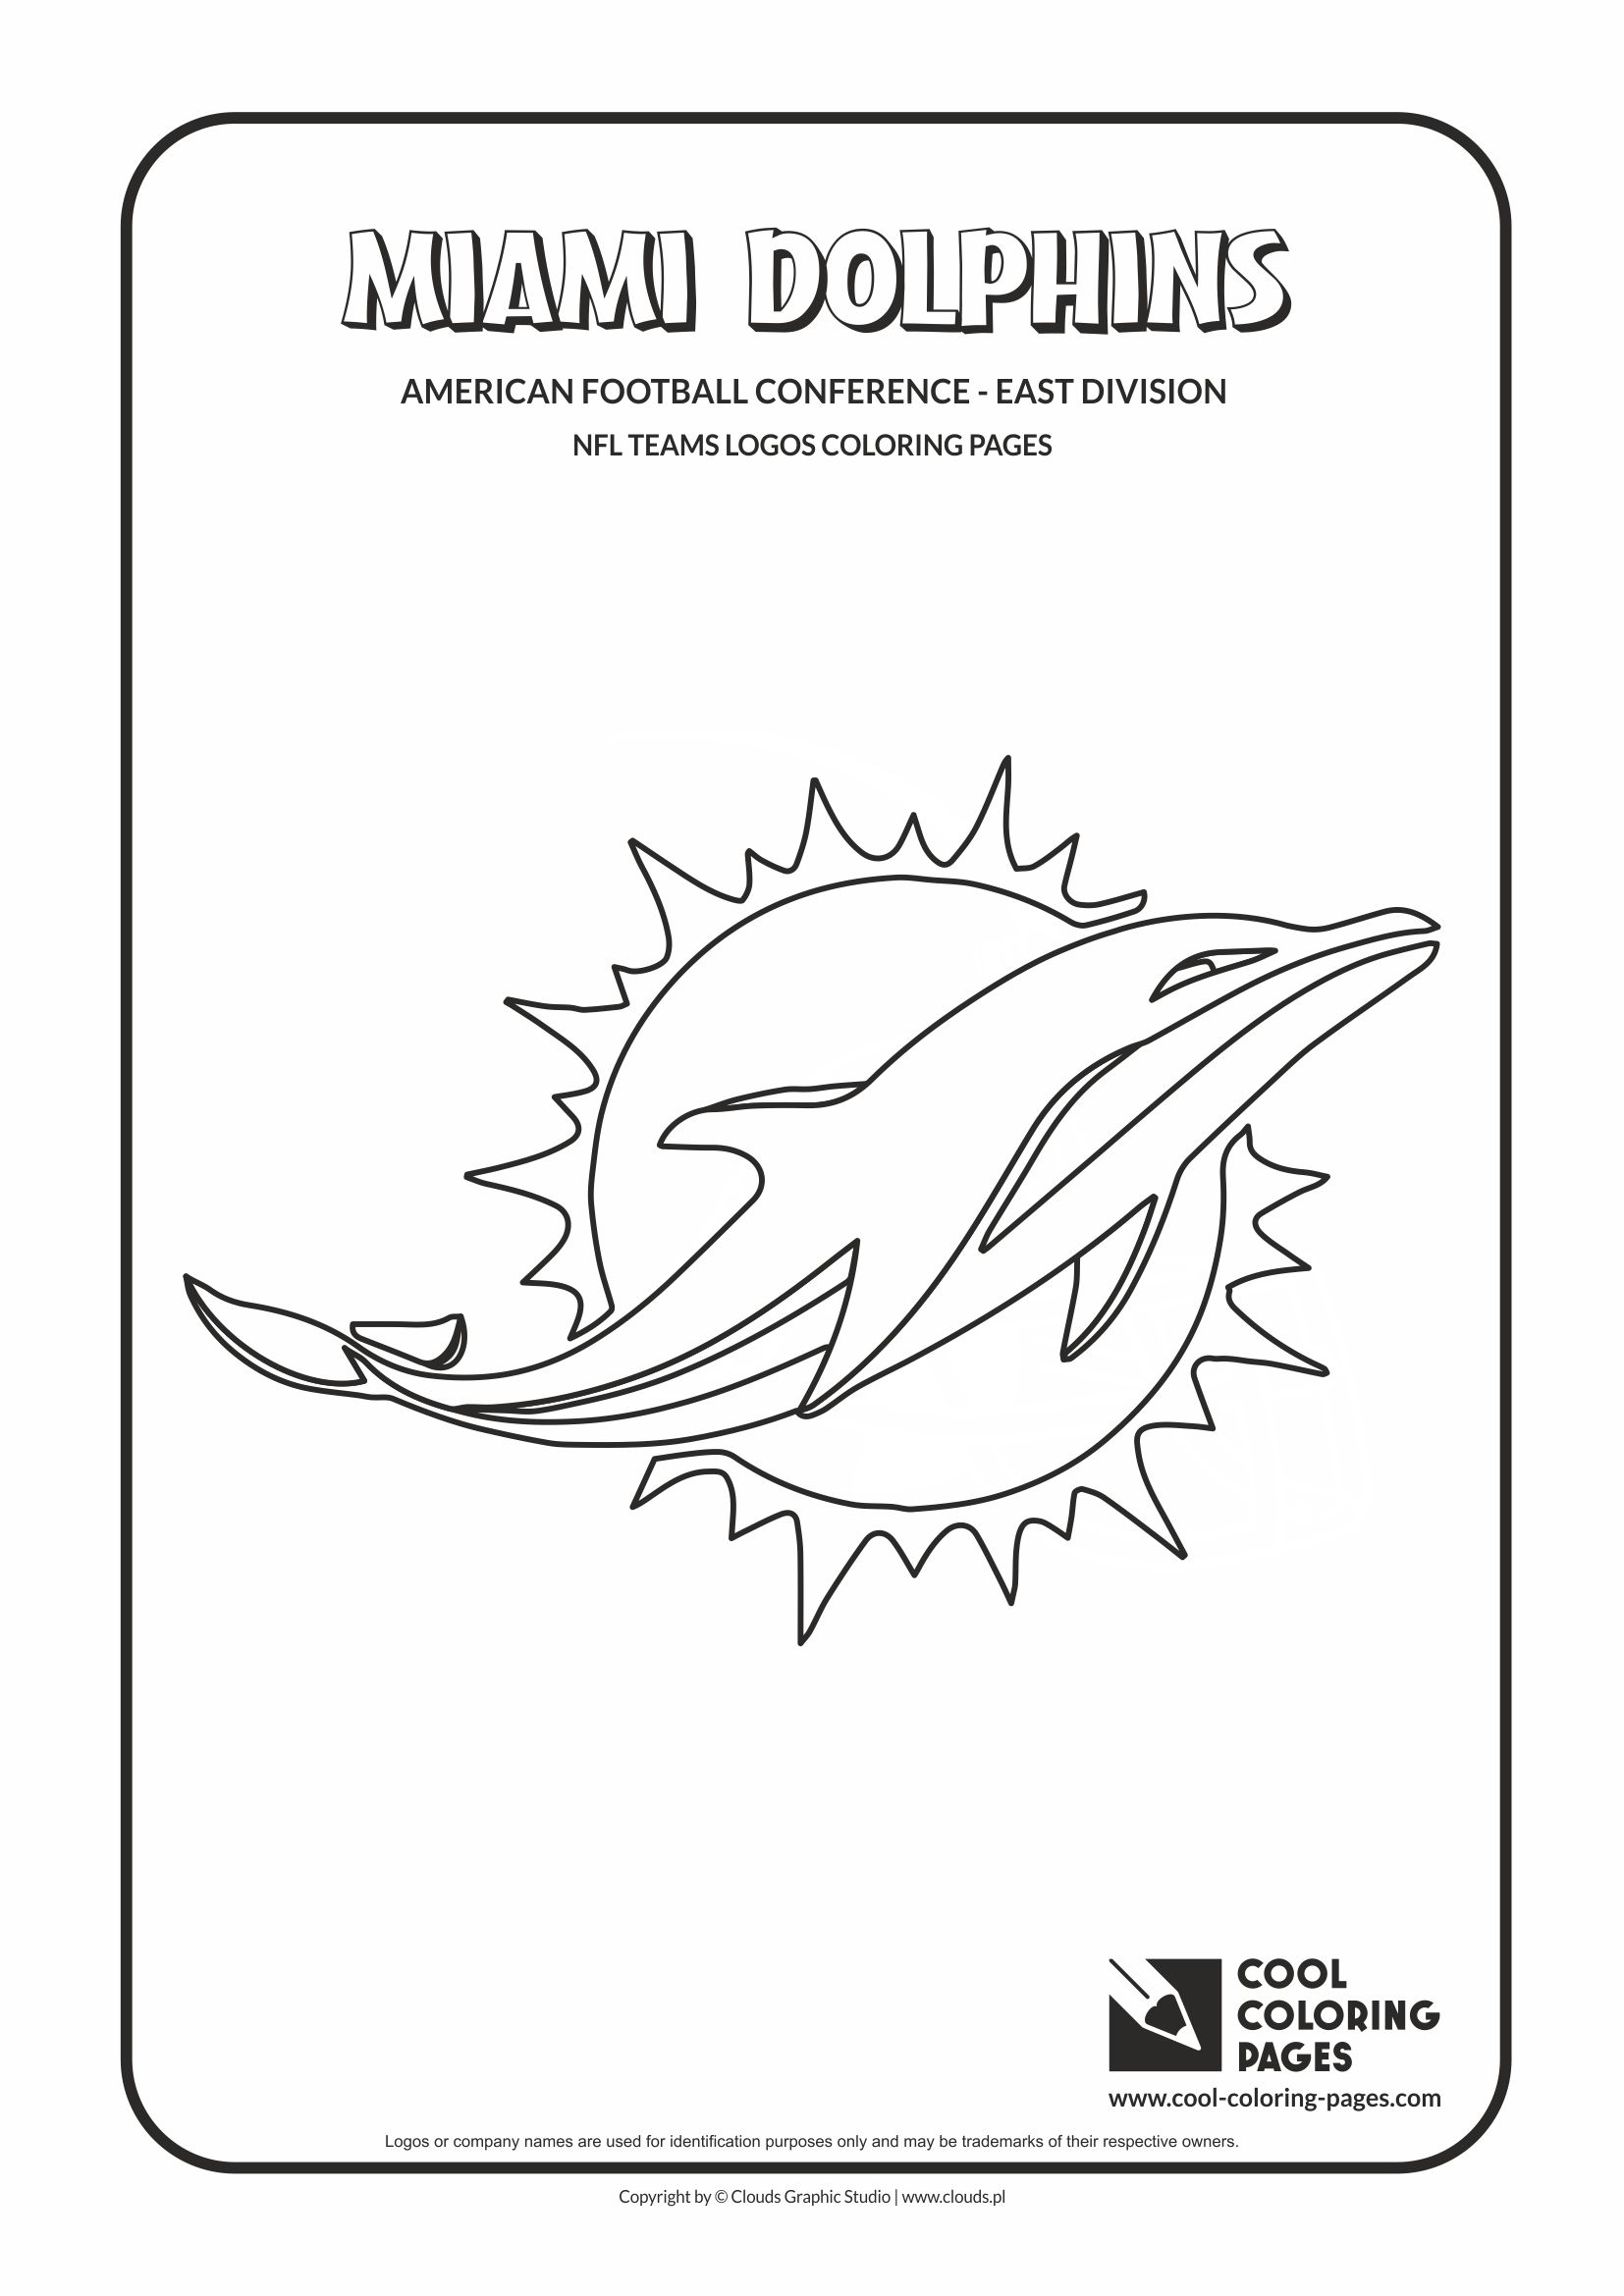 Miami Dolphins Coloring Pages : miami, dolphins, coloring, pages, Coloring, Pages, Miami, Dolphins, American, Football, Teams, Logos, Educational, Activities